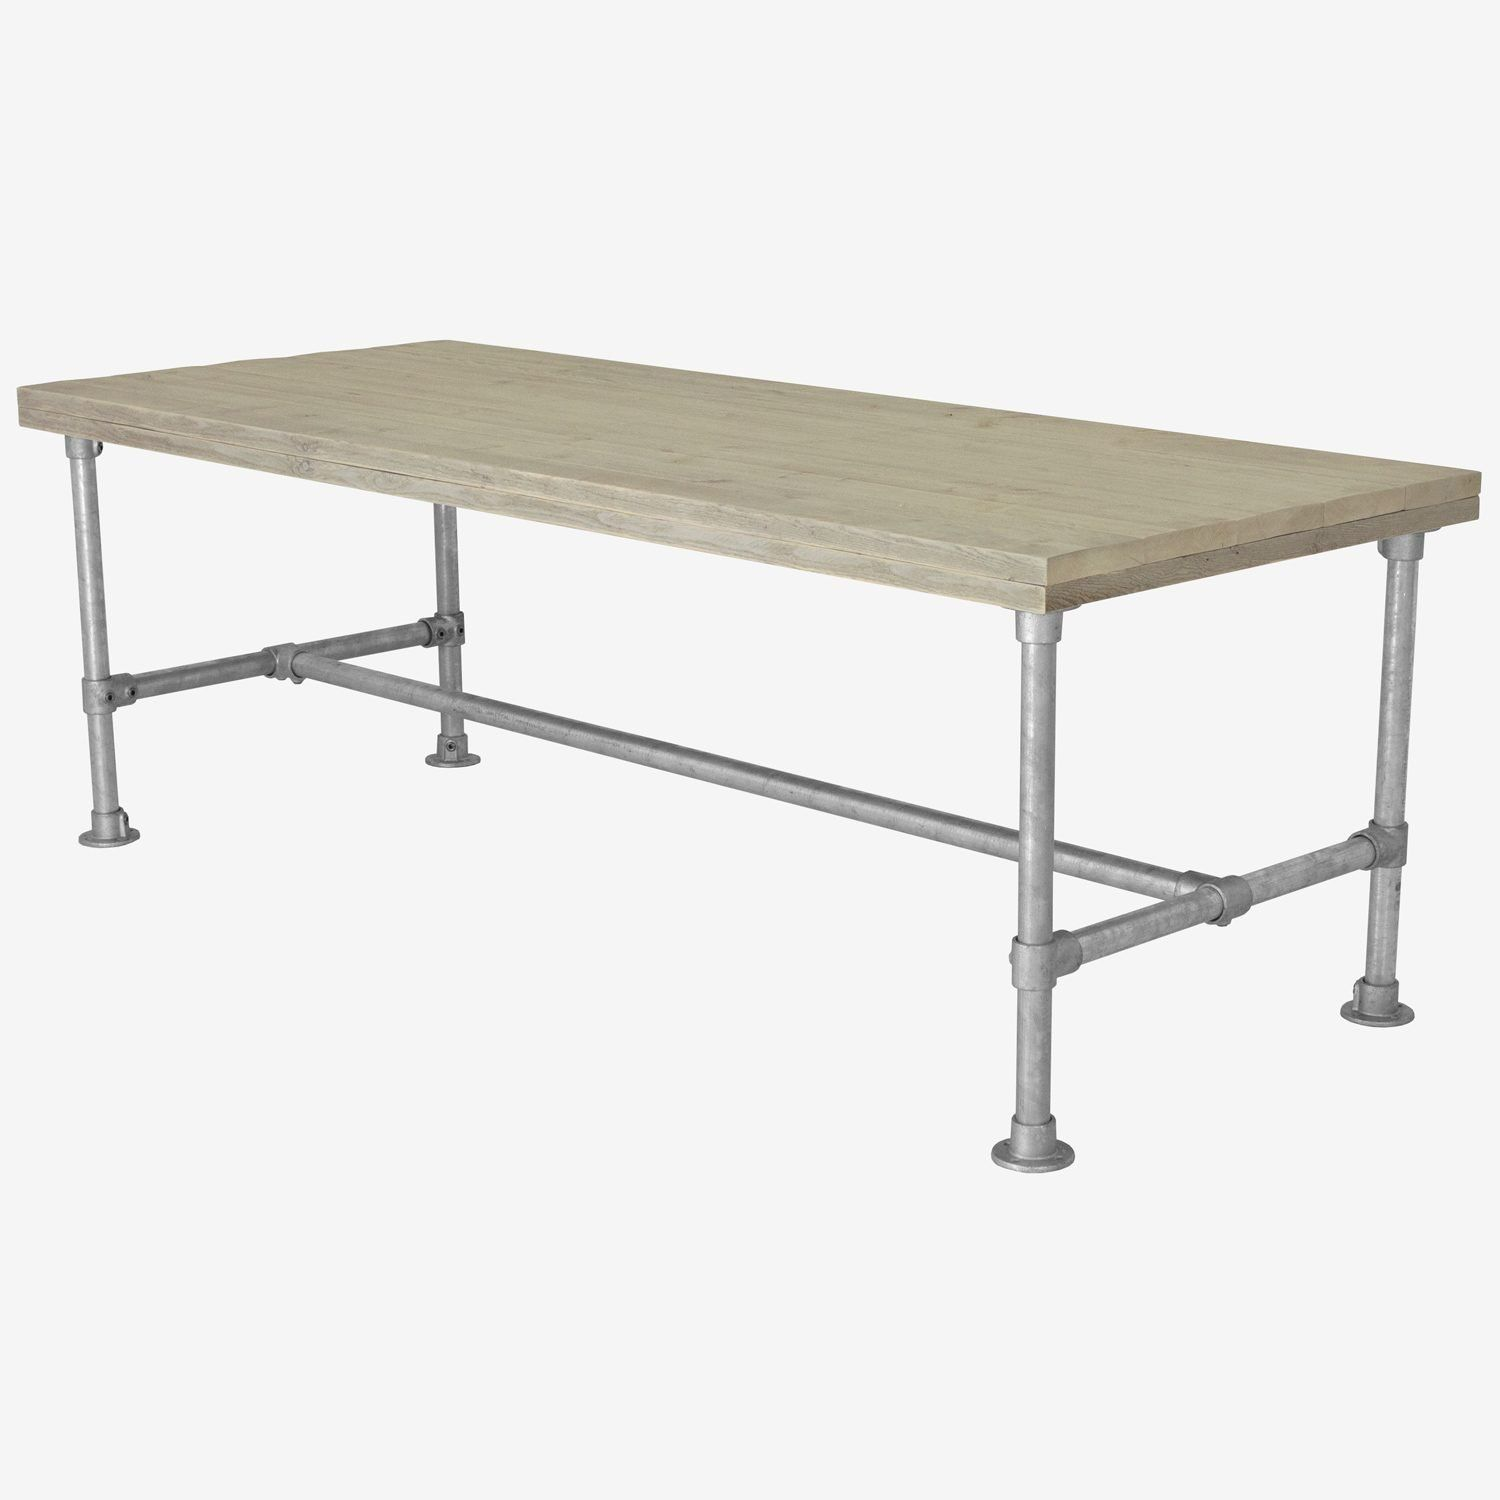 Galvanised Metal Table FRAME Kit 42mm Industrial Pipe Desk Kitchen Dining Table